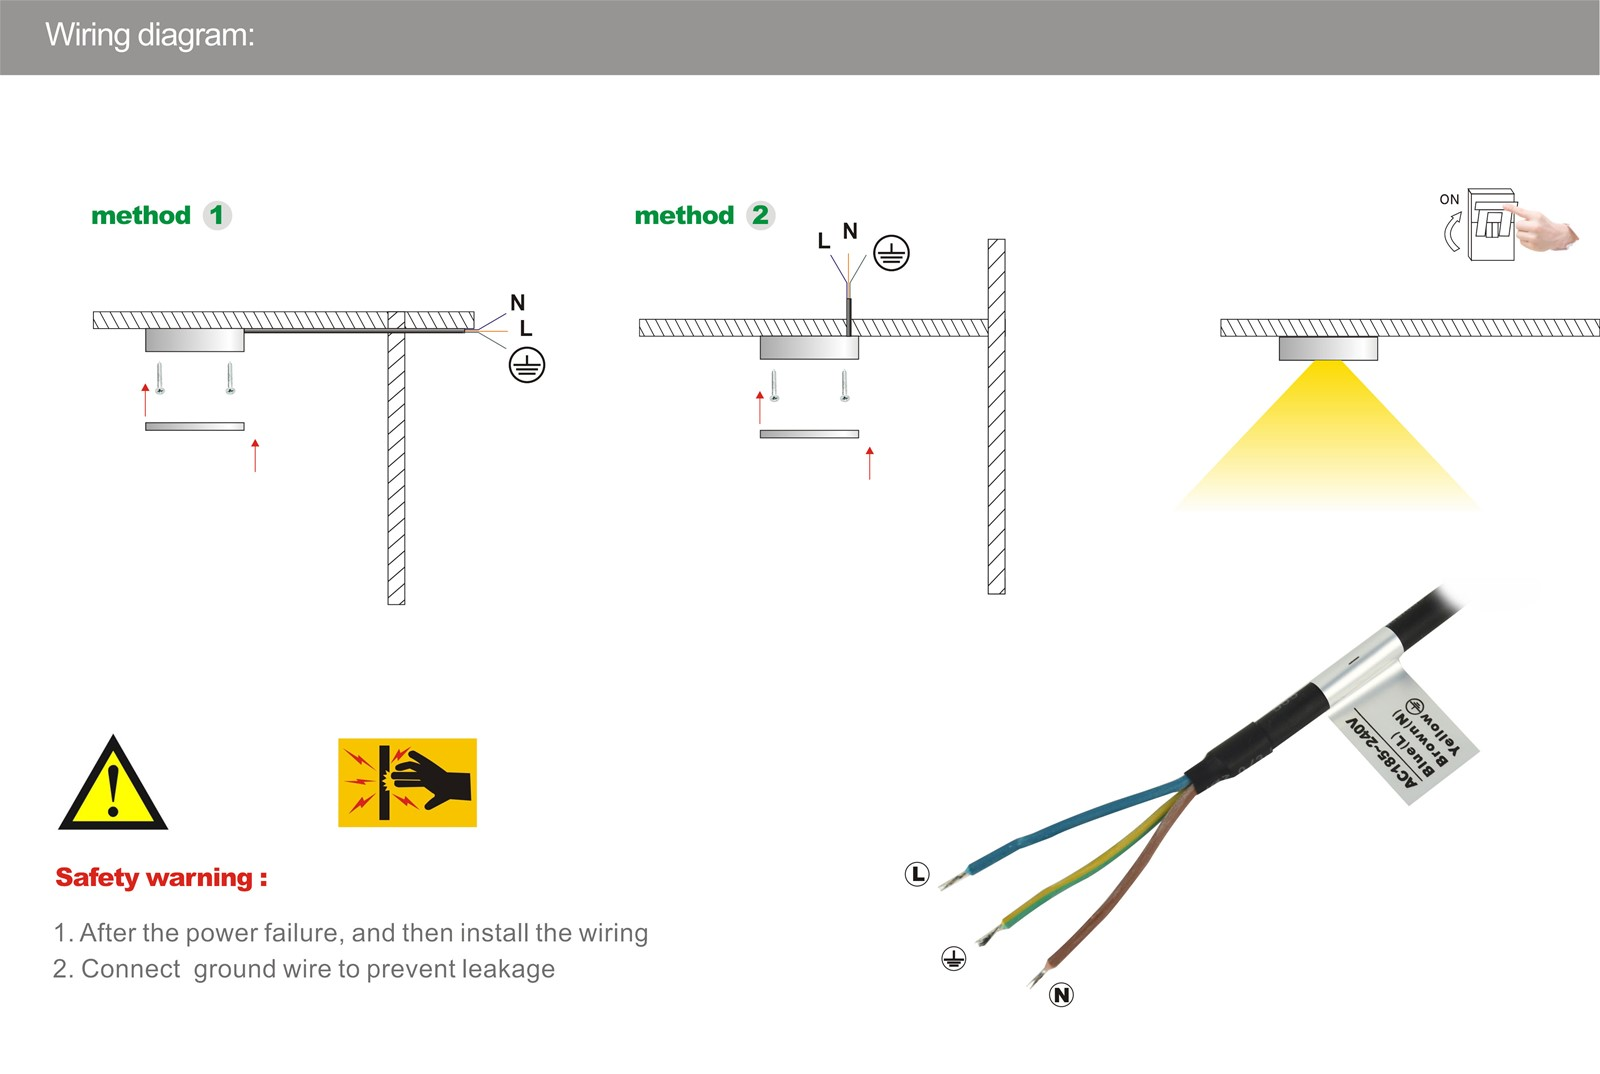 Surface Mounted 3w Mini Led Cabinet Light Dimmable Waterproof Ip65 Fixture Ground Wire Install Wiring Epistar Chips Cob